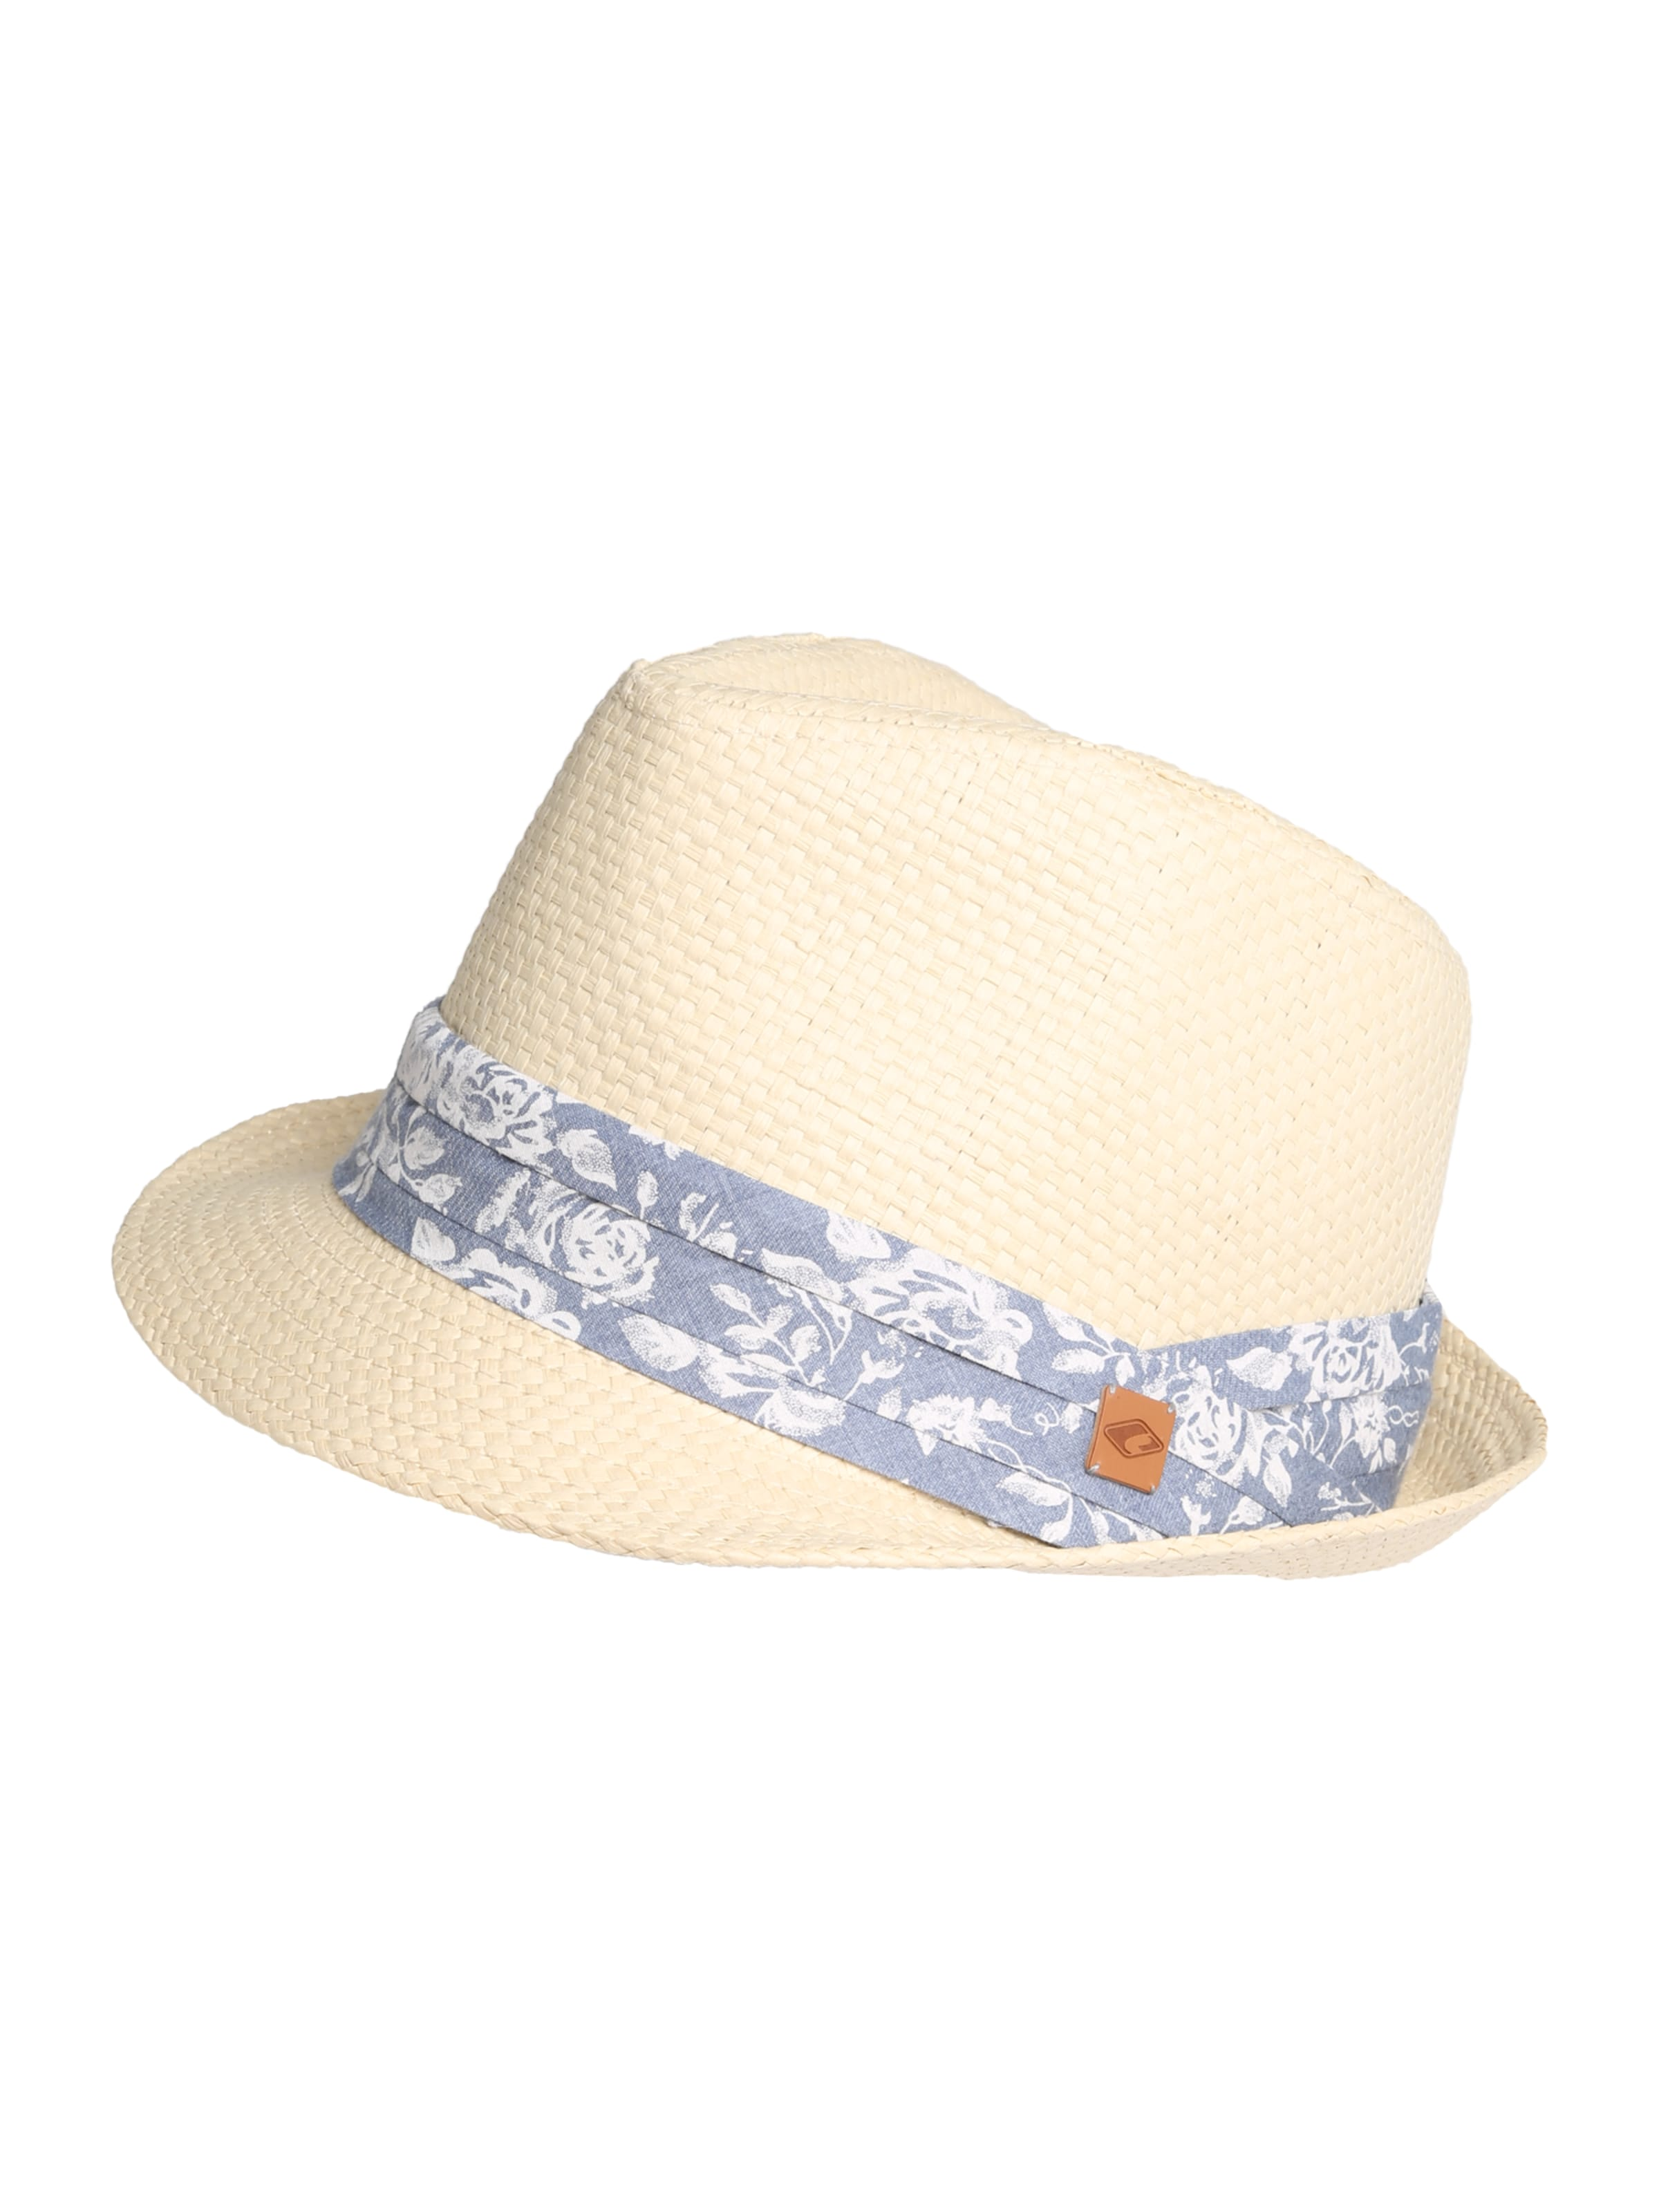 Trilby BeigeBlau In Strohhut Chillouts 'minneapolis' mNn08vw